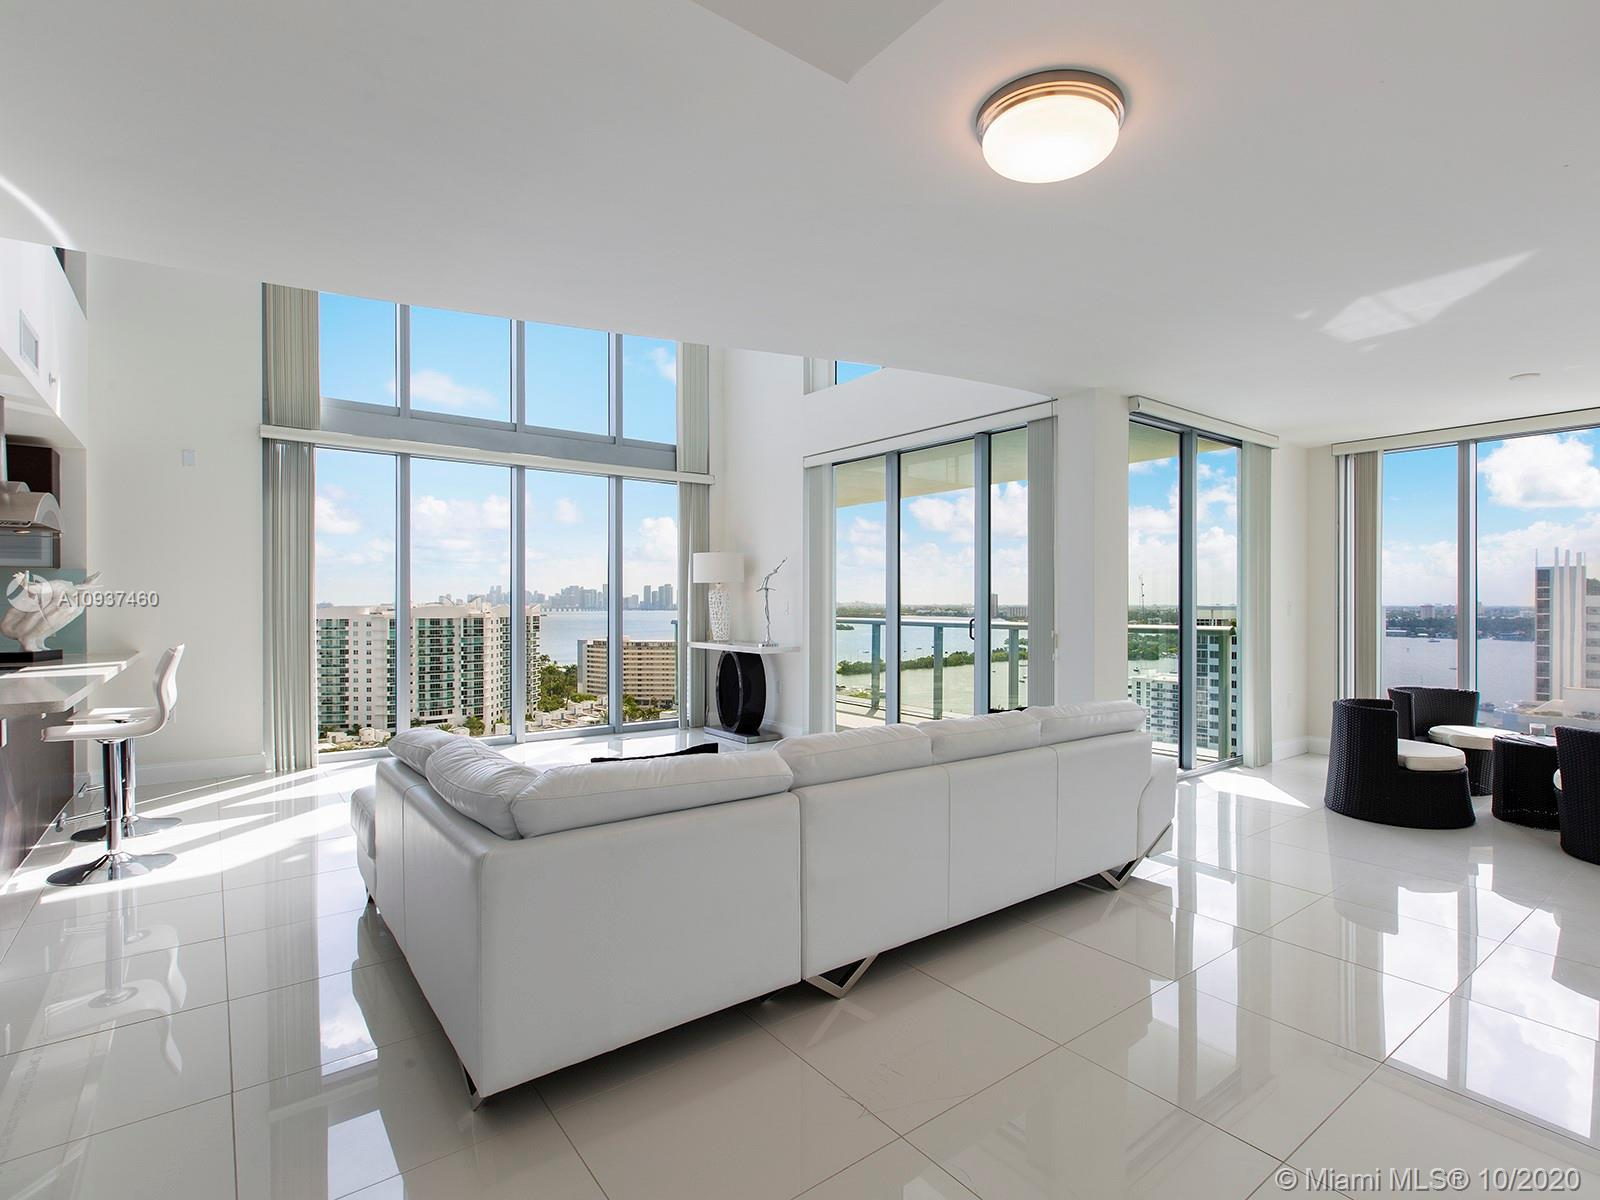 This beautiful apt offers over 2,500 sq ft of open space living with 3 bedrooms, 3.5 bathrooms, an o